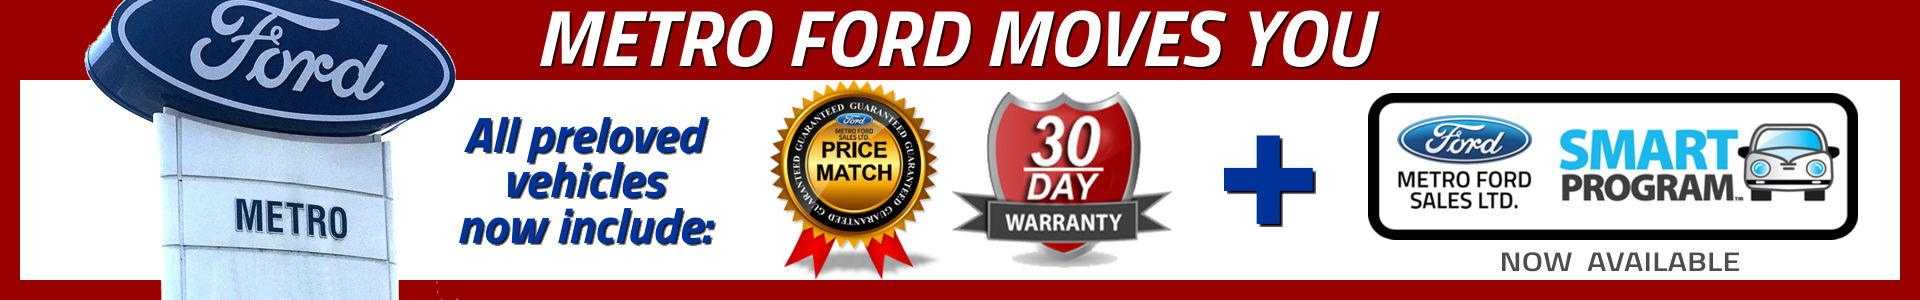 Metro Moves You - The Used Vehicle Difference at Metro Ford.